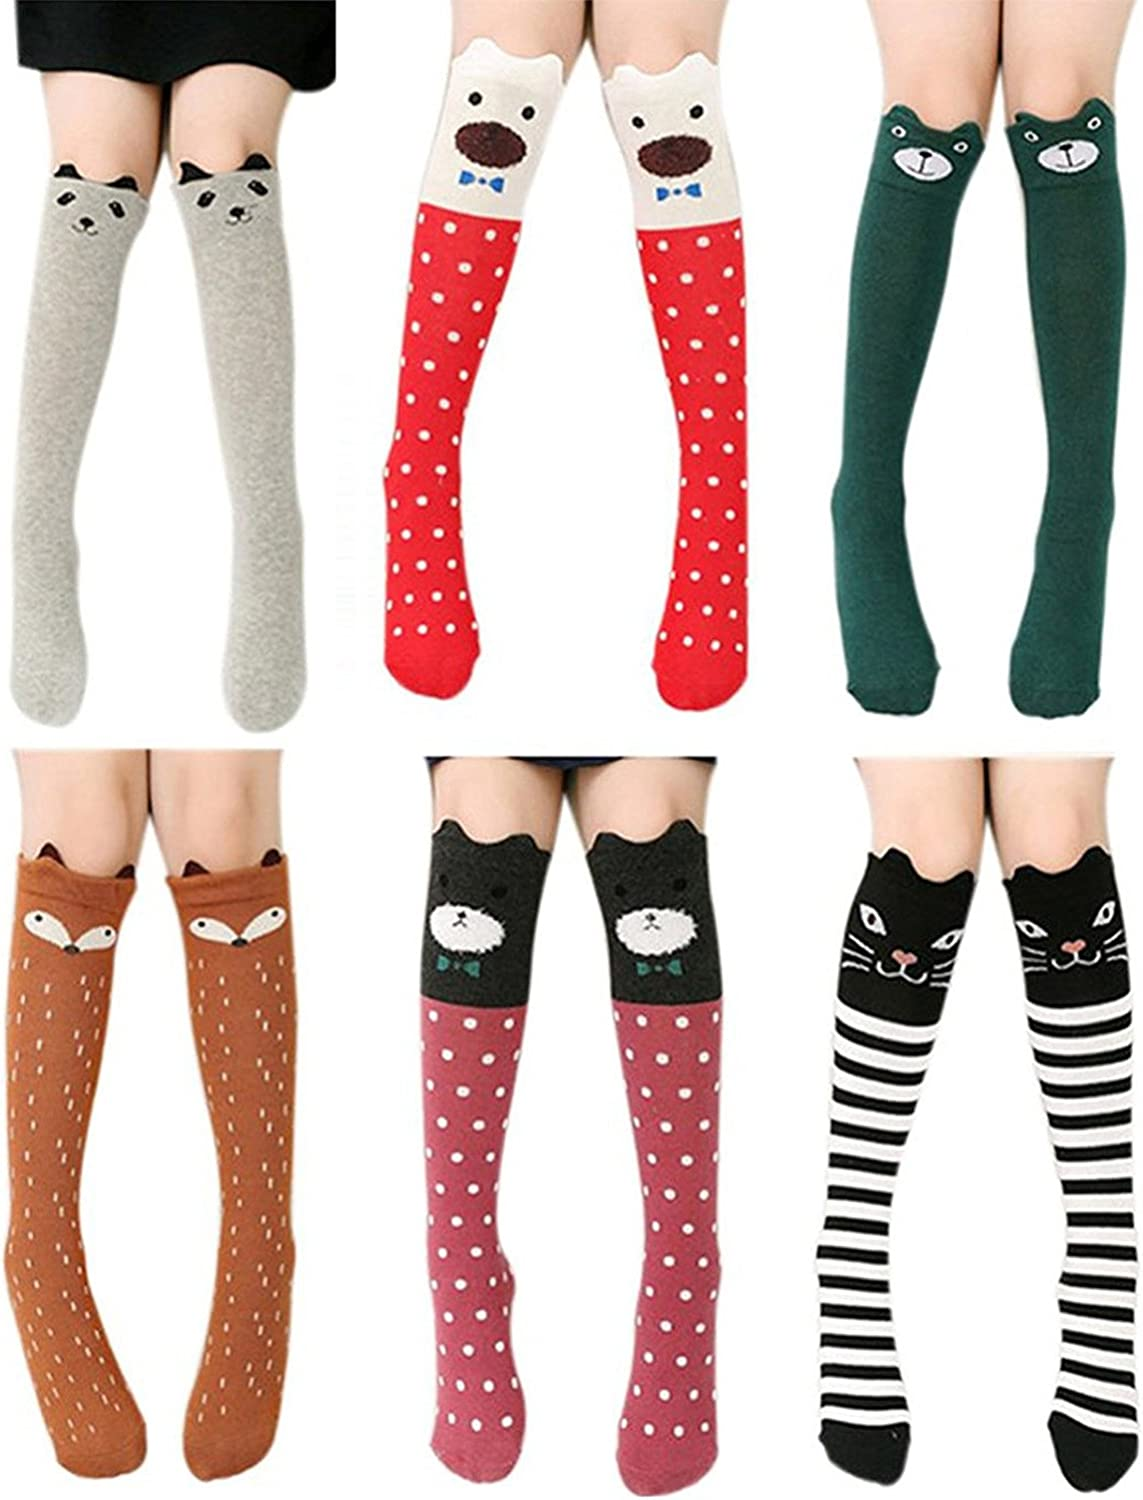 Top Sox Infants Toddlers Girls 3 Pairs Design Tights Cotton Rich Panda Unicorn Cat Tails 1-6 Years